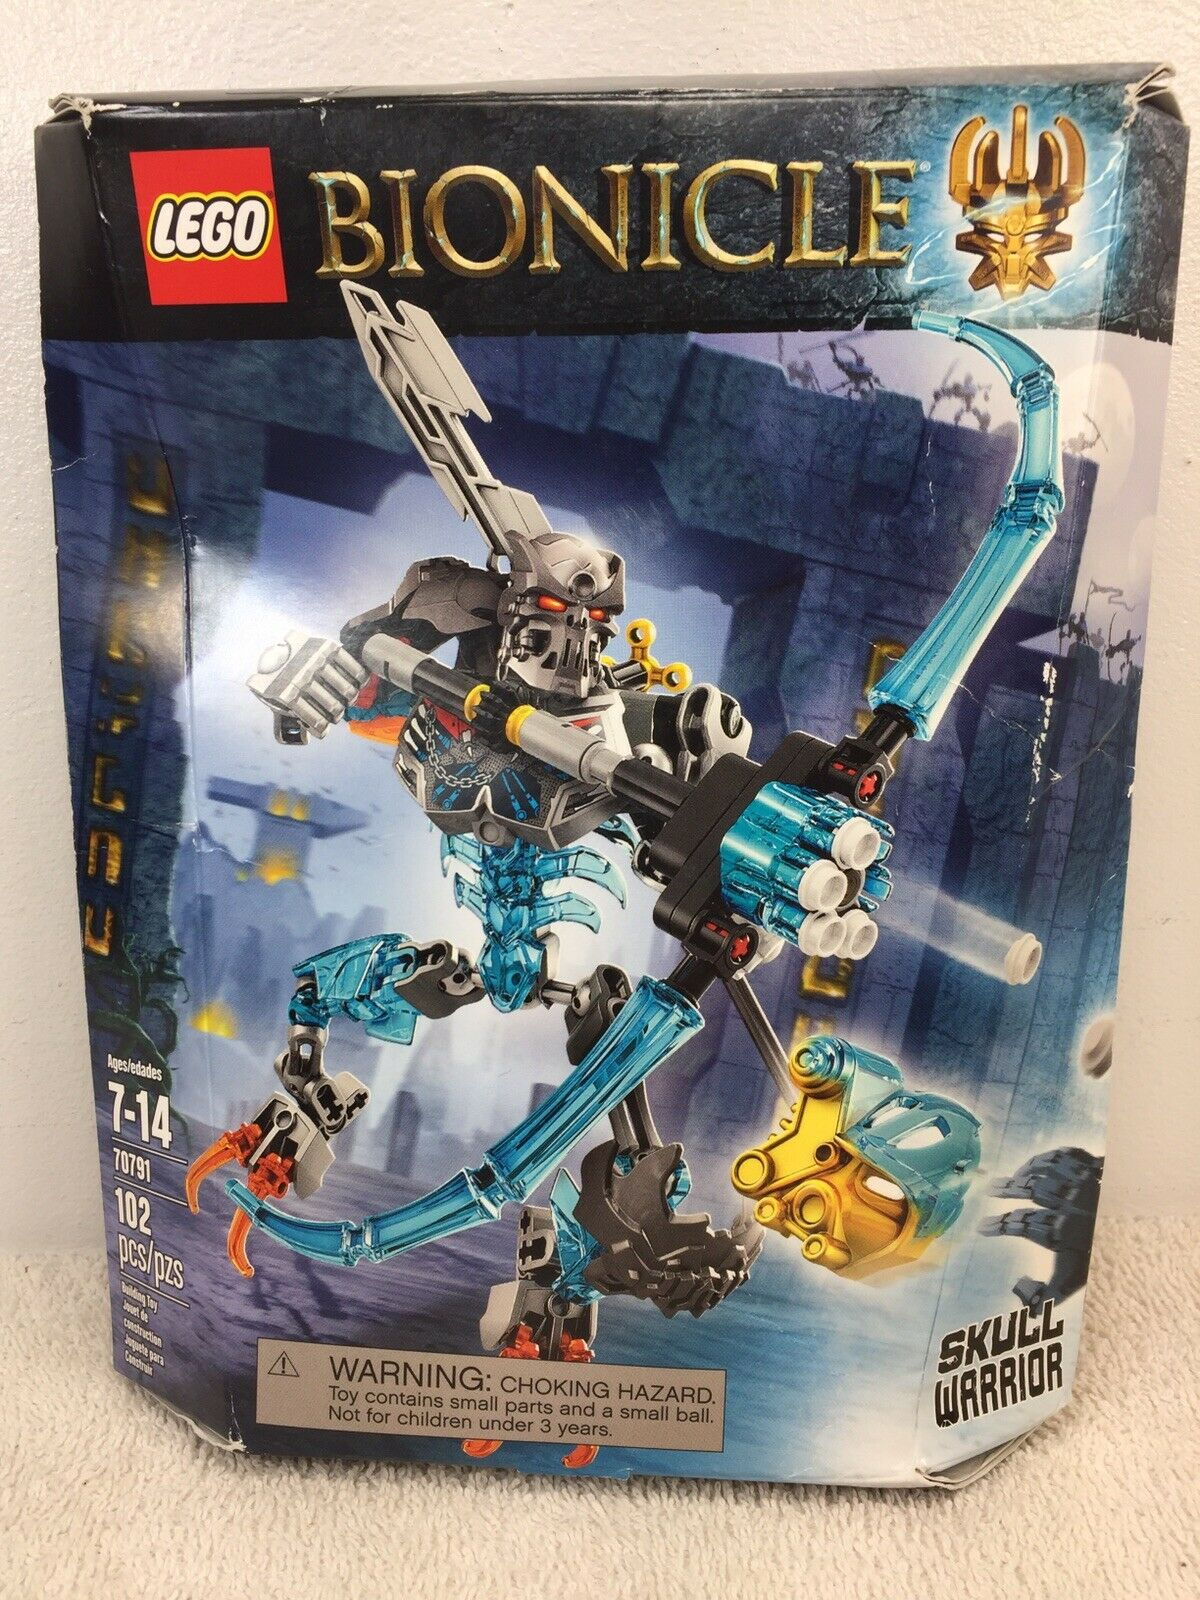 Lego 70791 Bionicle Skull Warrior 102 Pcs New Retired Minor Box Damage 2015